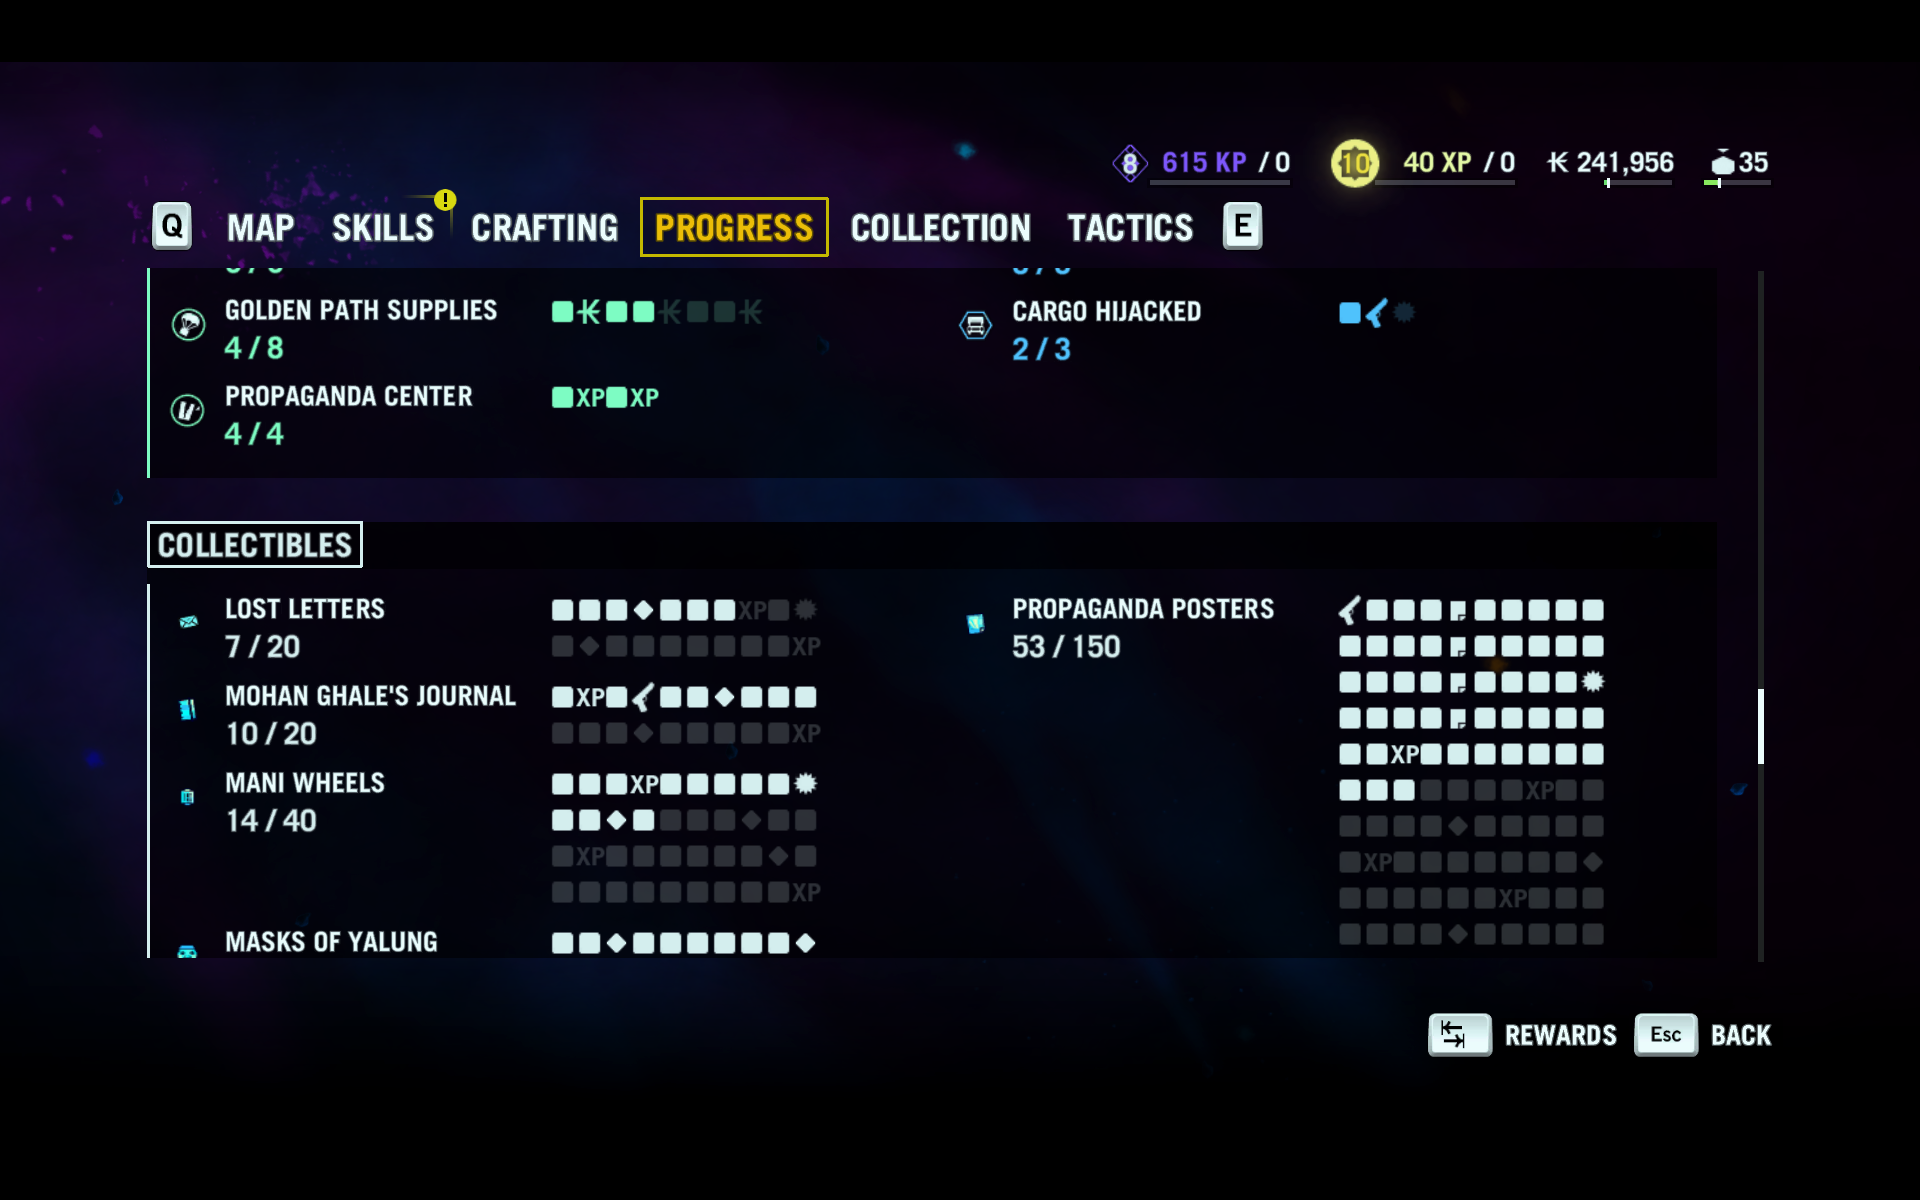 Far Cry 4 progress screen